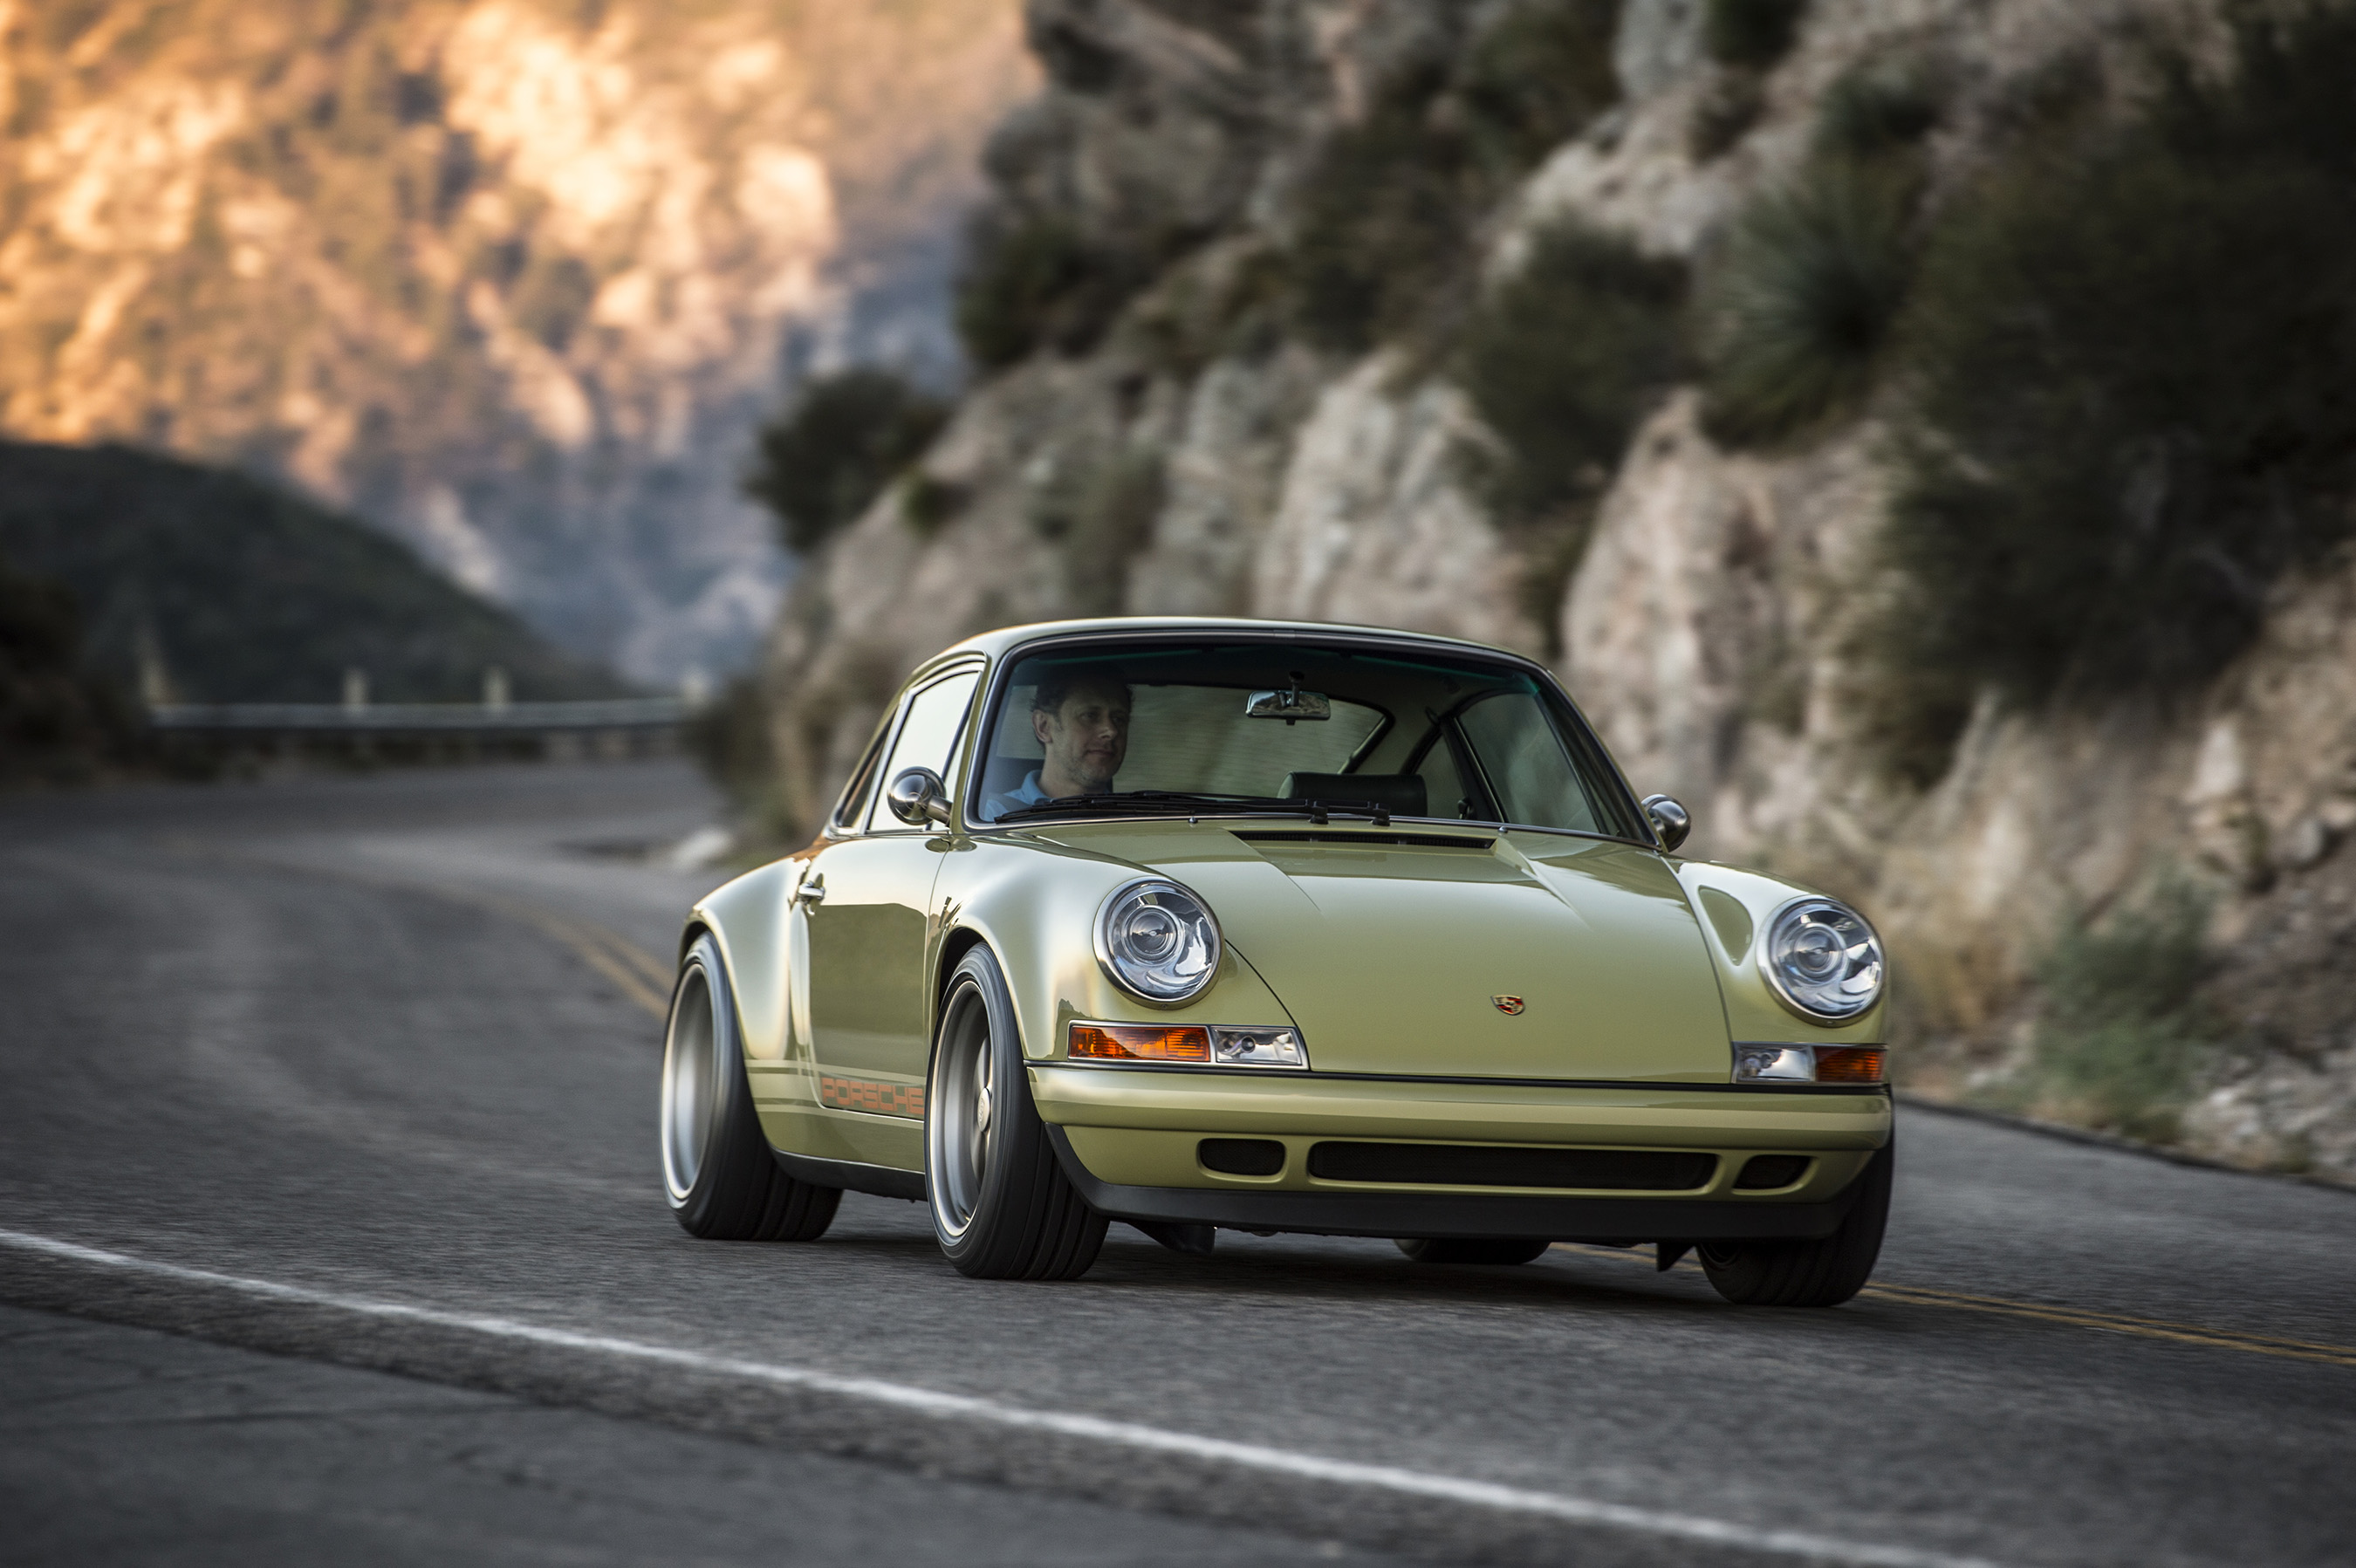 majestic salon prive to host latest porsche 911 reimagined by